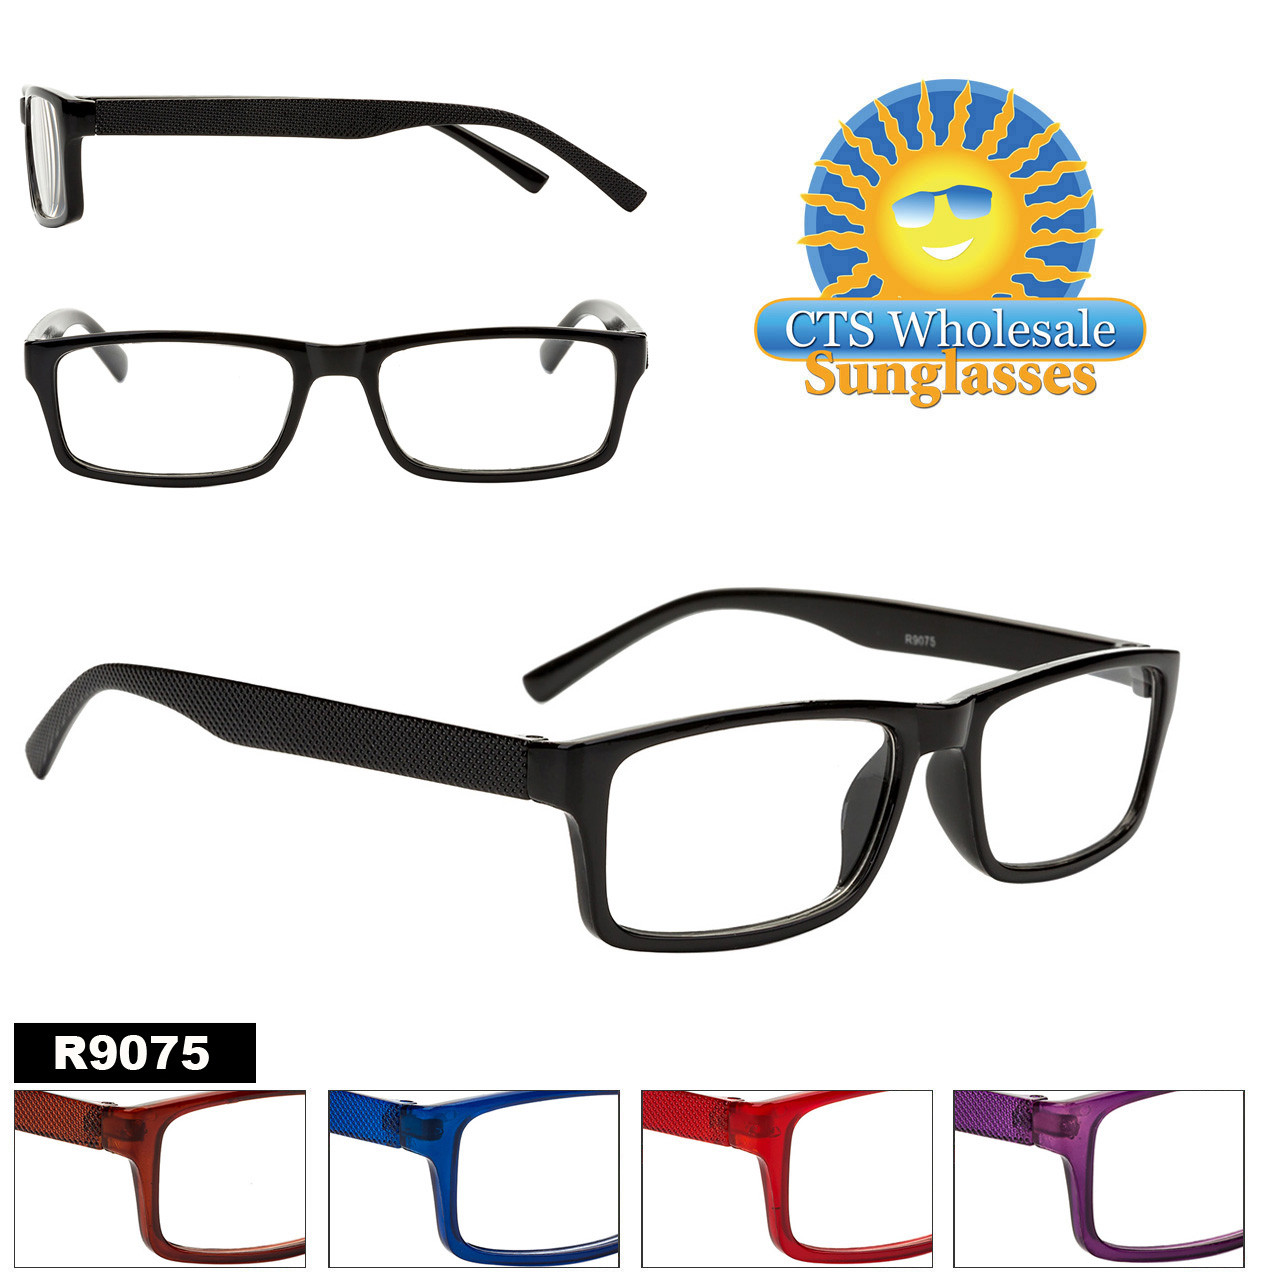 Wholesale Reading Glasses - R9075